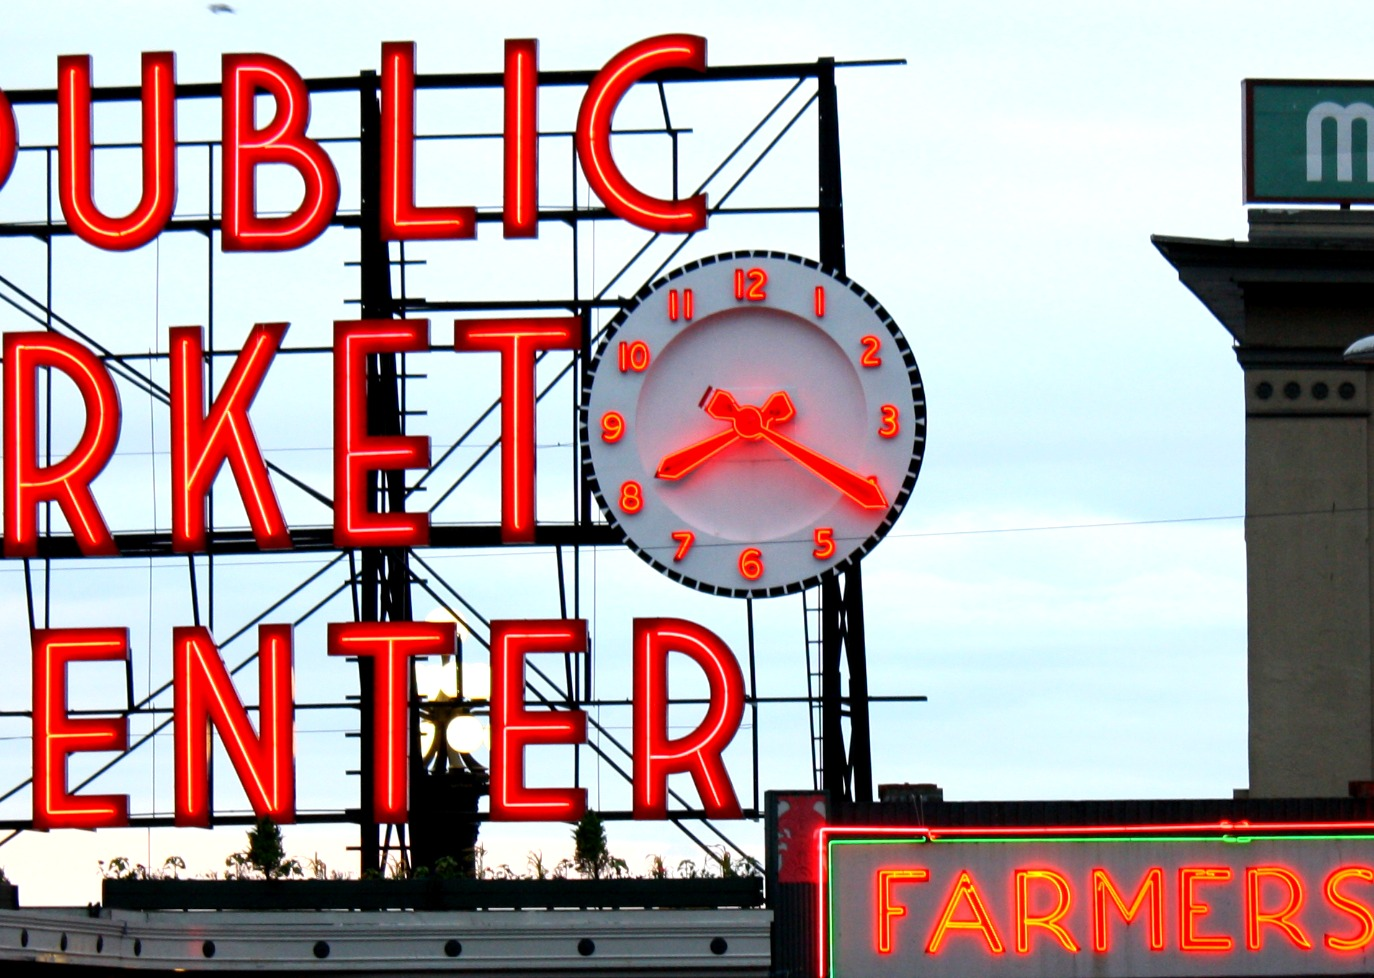 public market center neon sign with clock in seattle washington